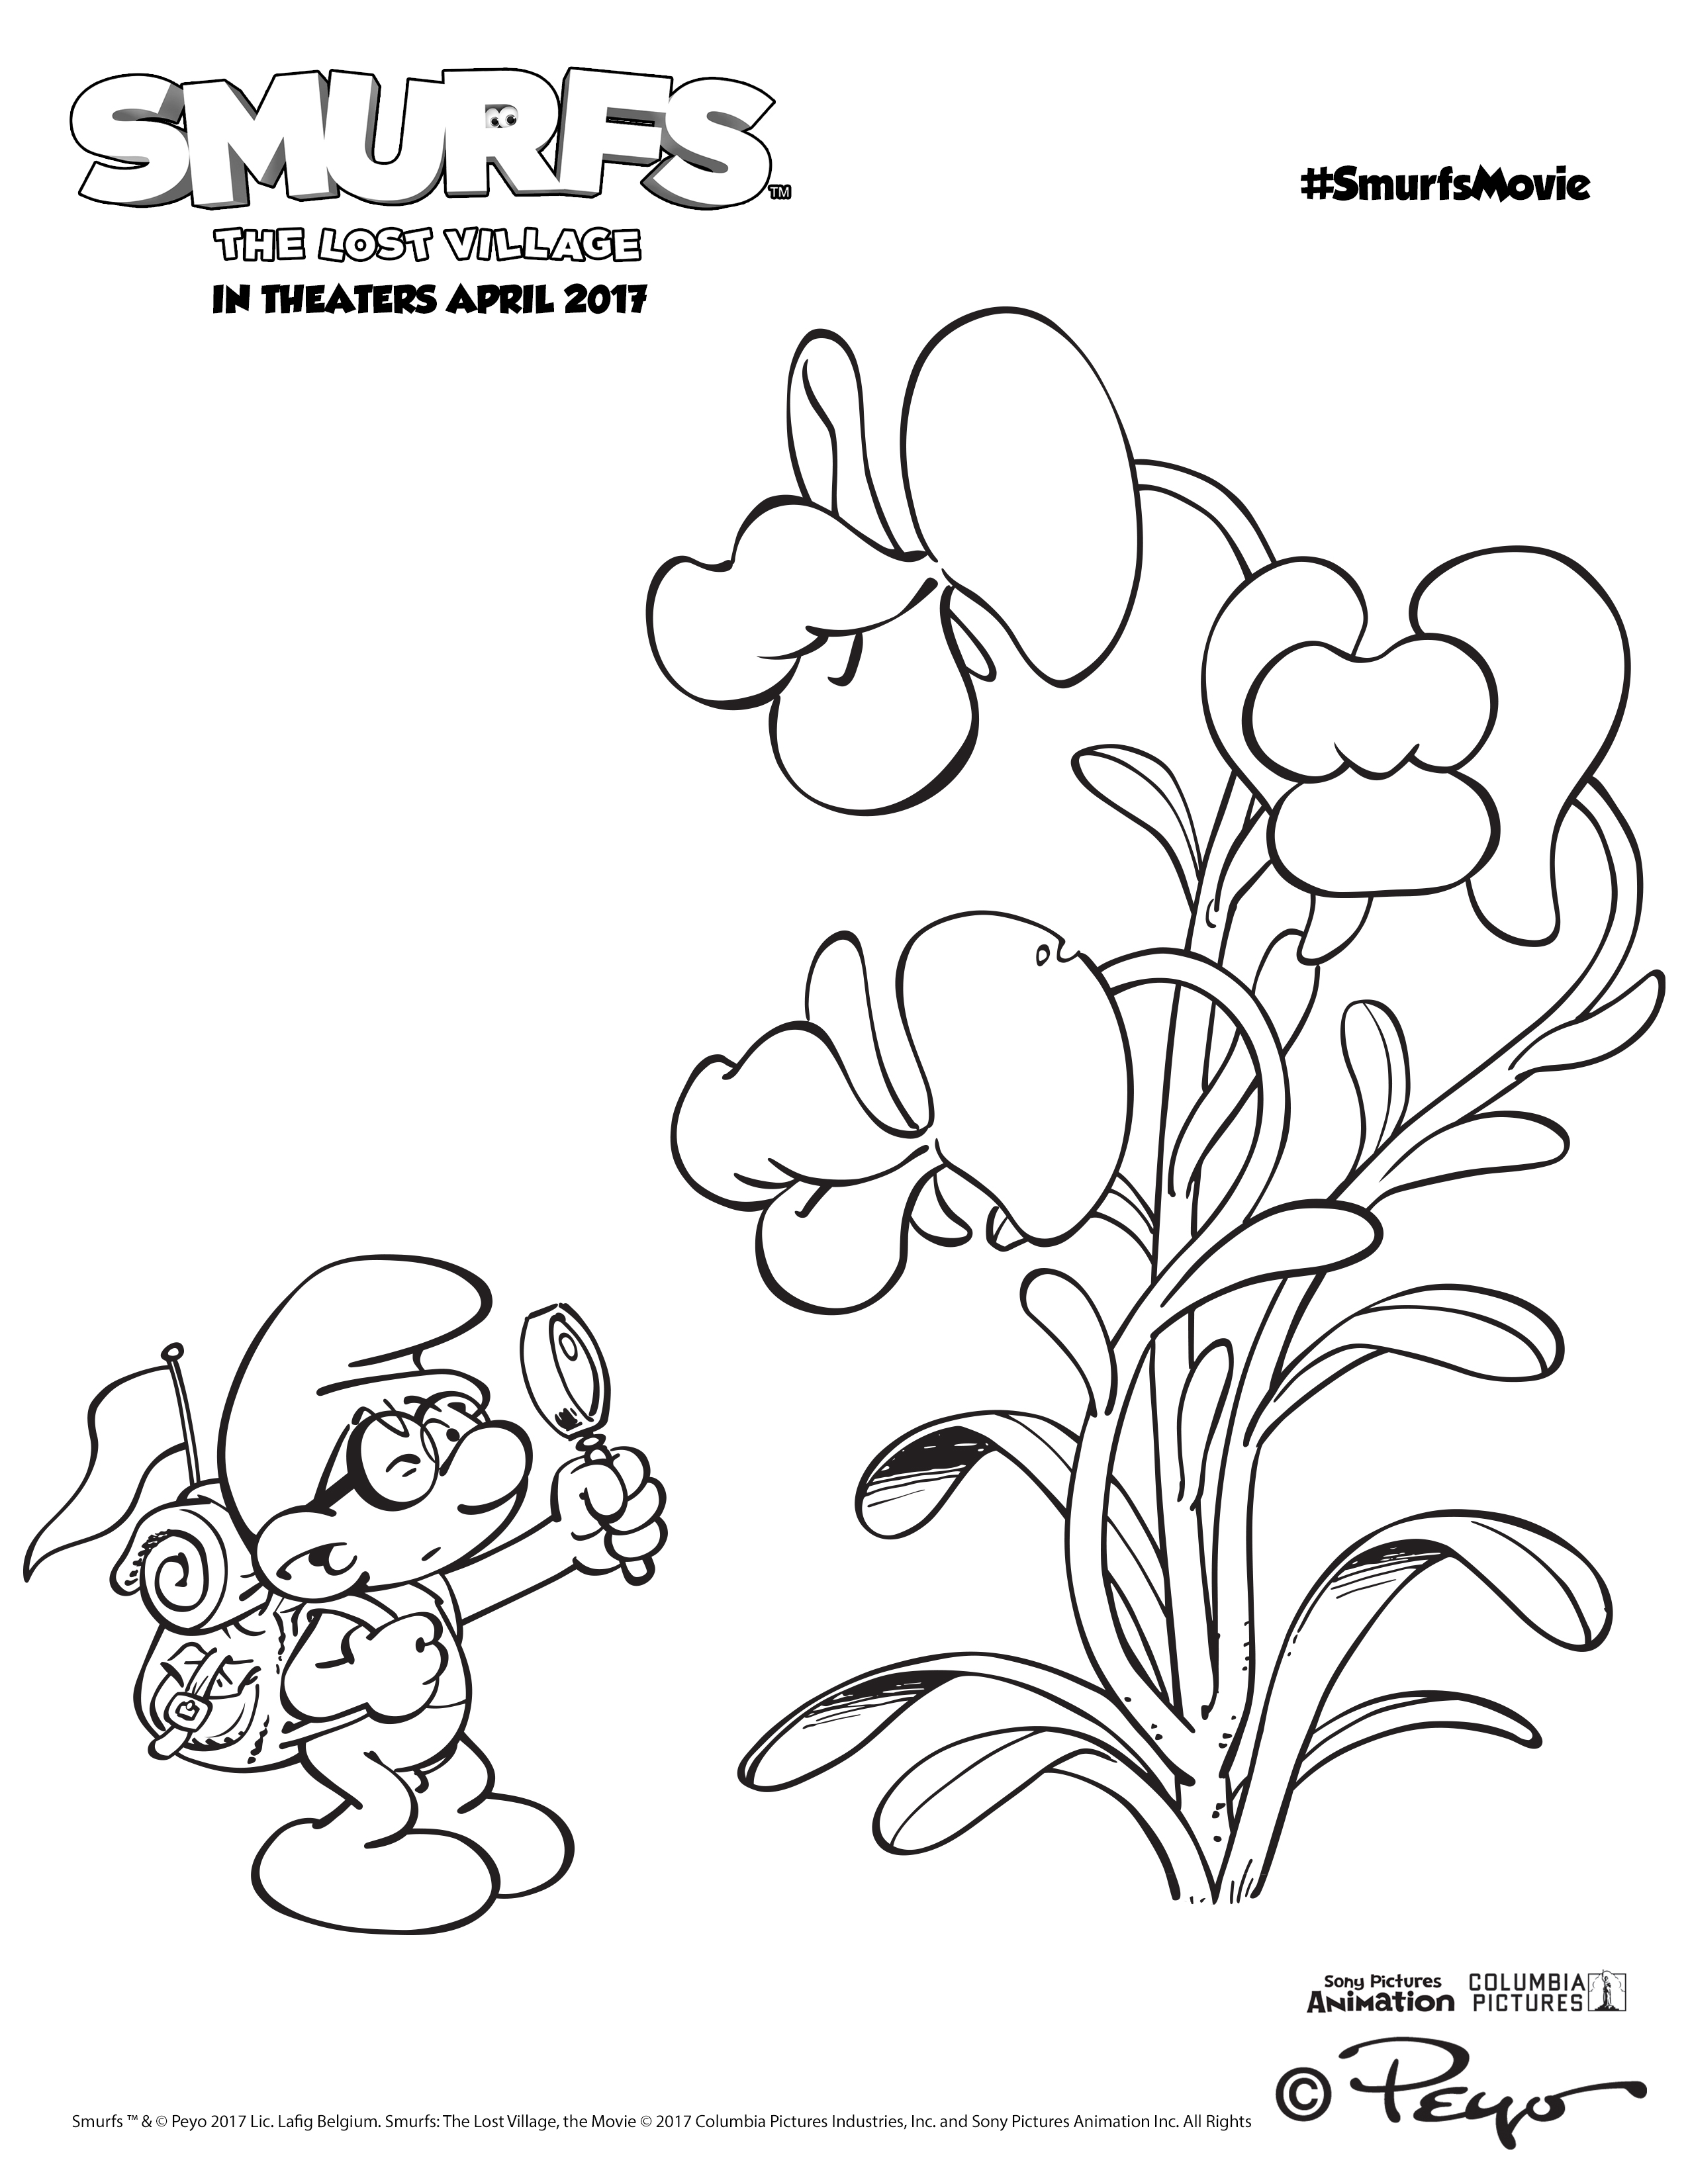 The Smurfs: The Lost Village Coloring & Activity Sheets